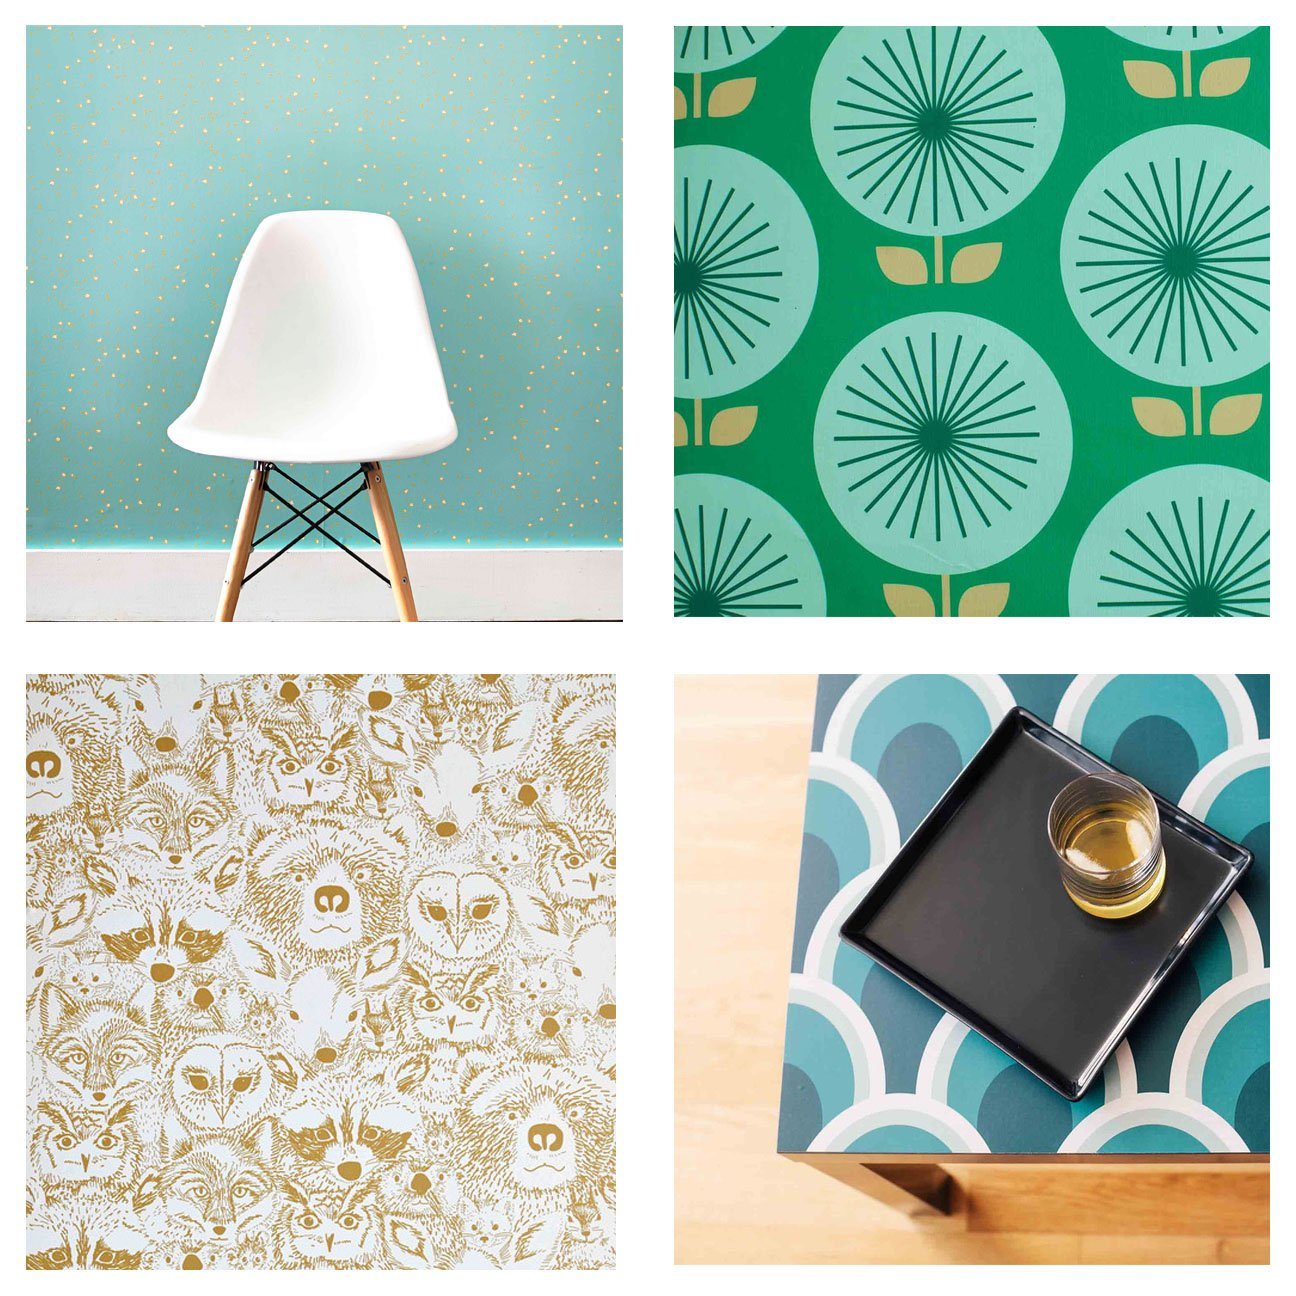 Design Finds Temporary Wallpaper FINDS 1296x1296